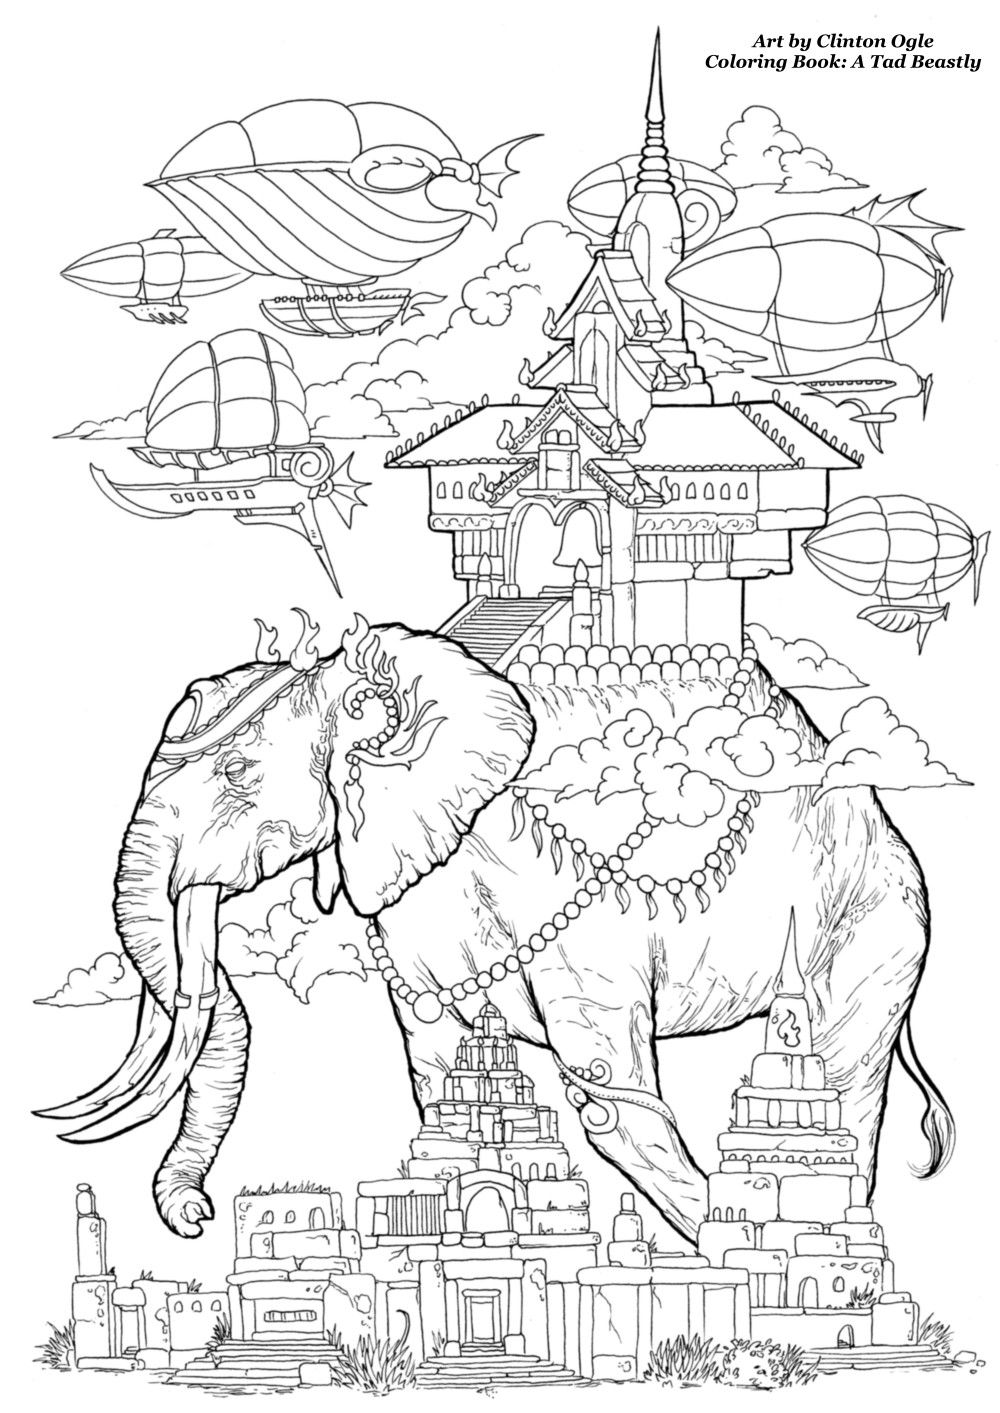 """Free Coloring Page from the soon to be released Adult Coloring Book: """"A Tad Beastly"""" by Clinton Ogle"""